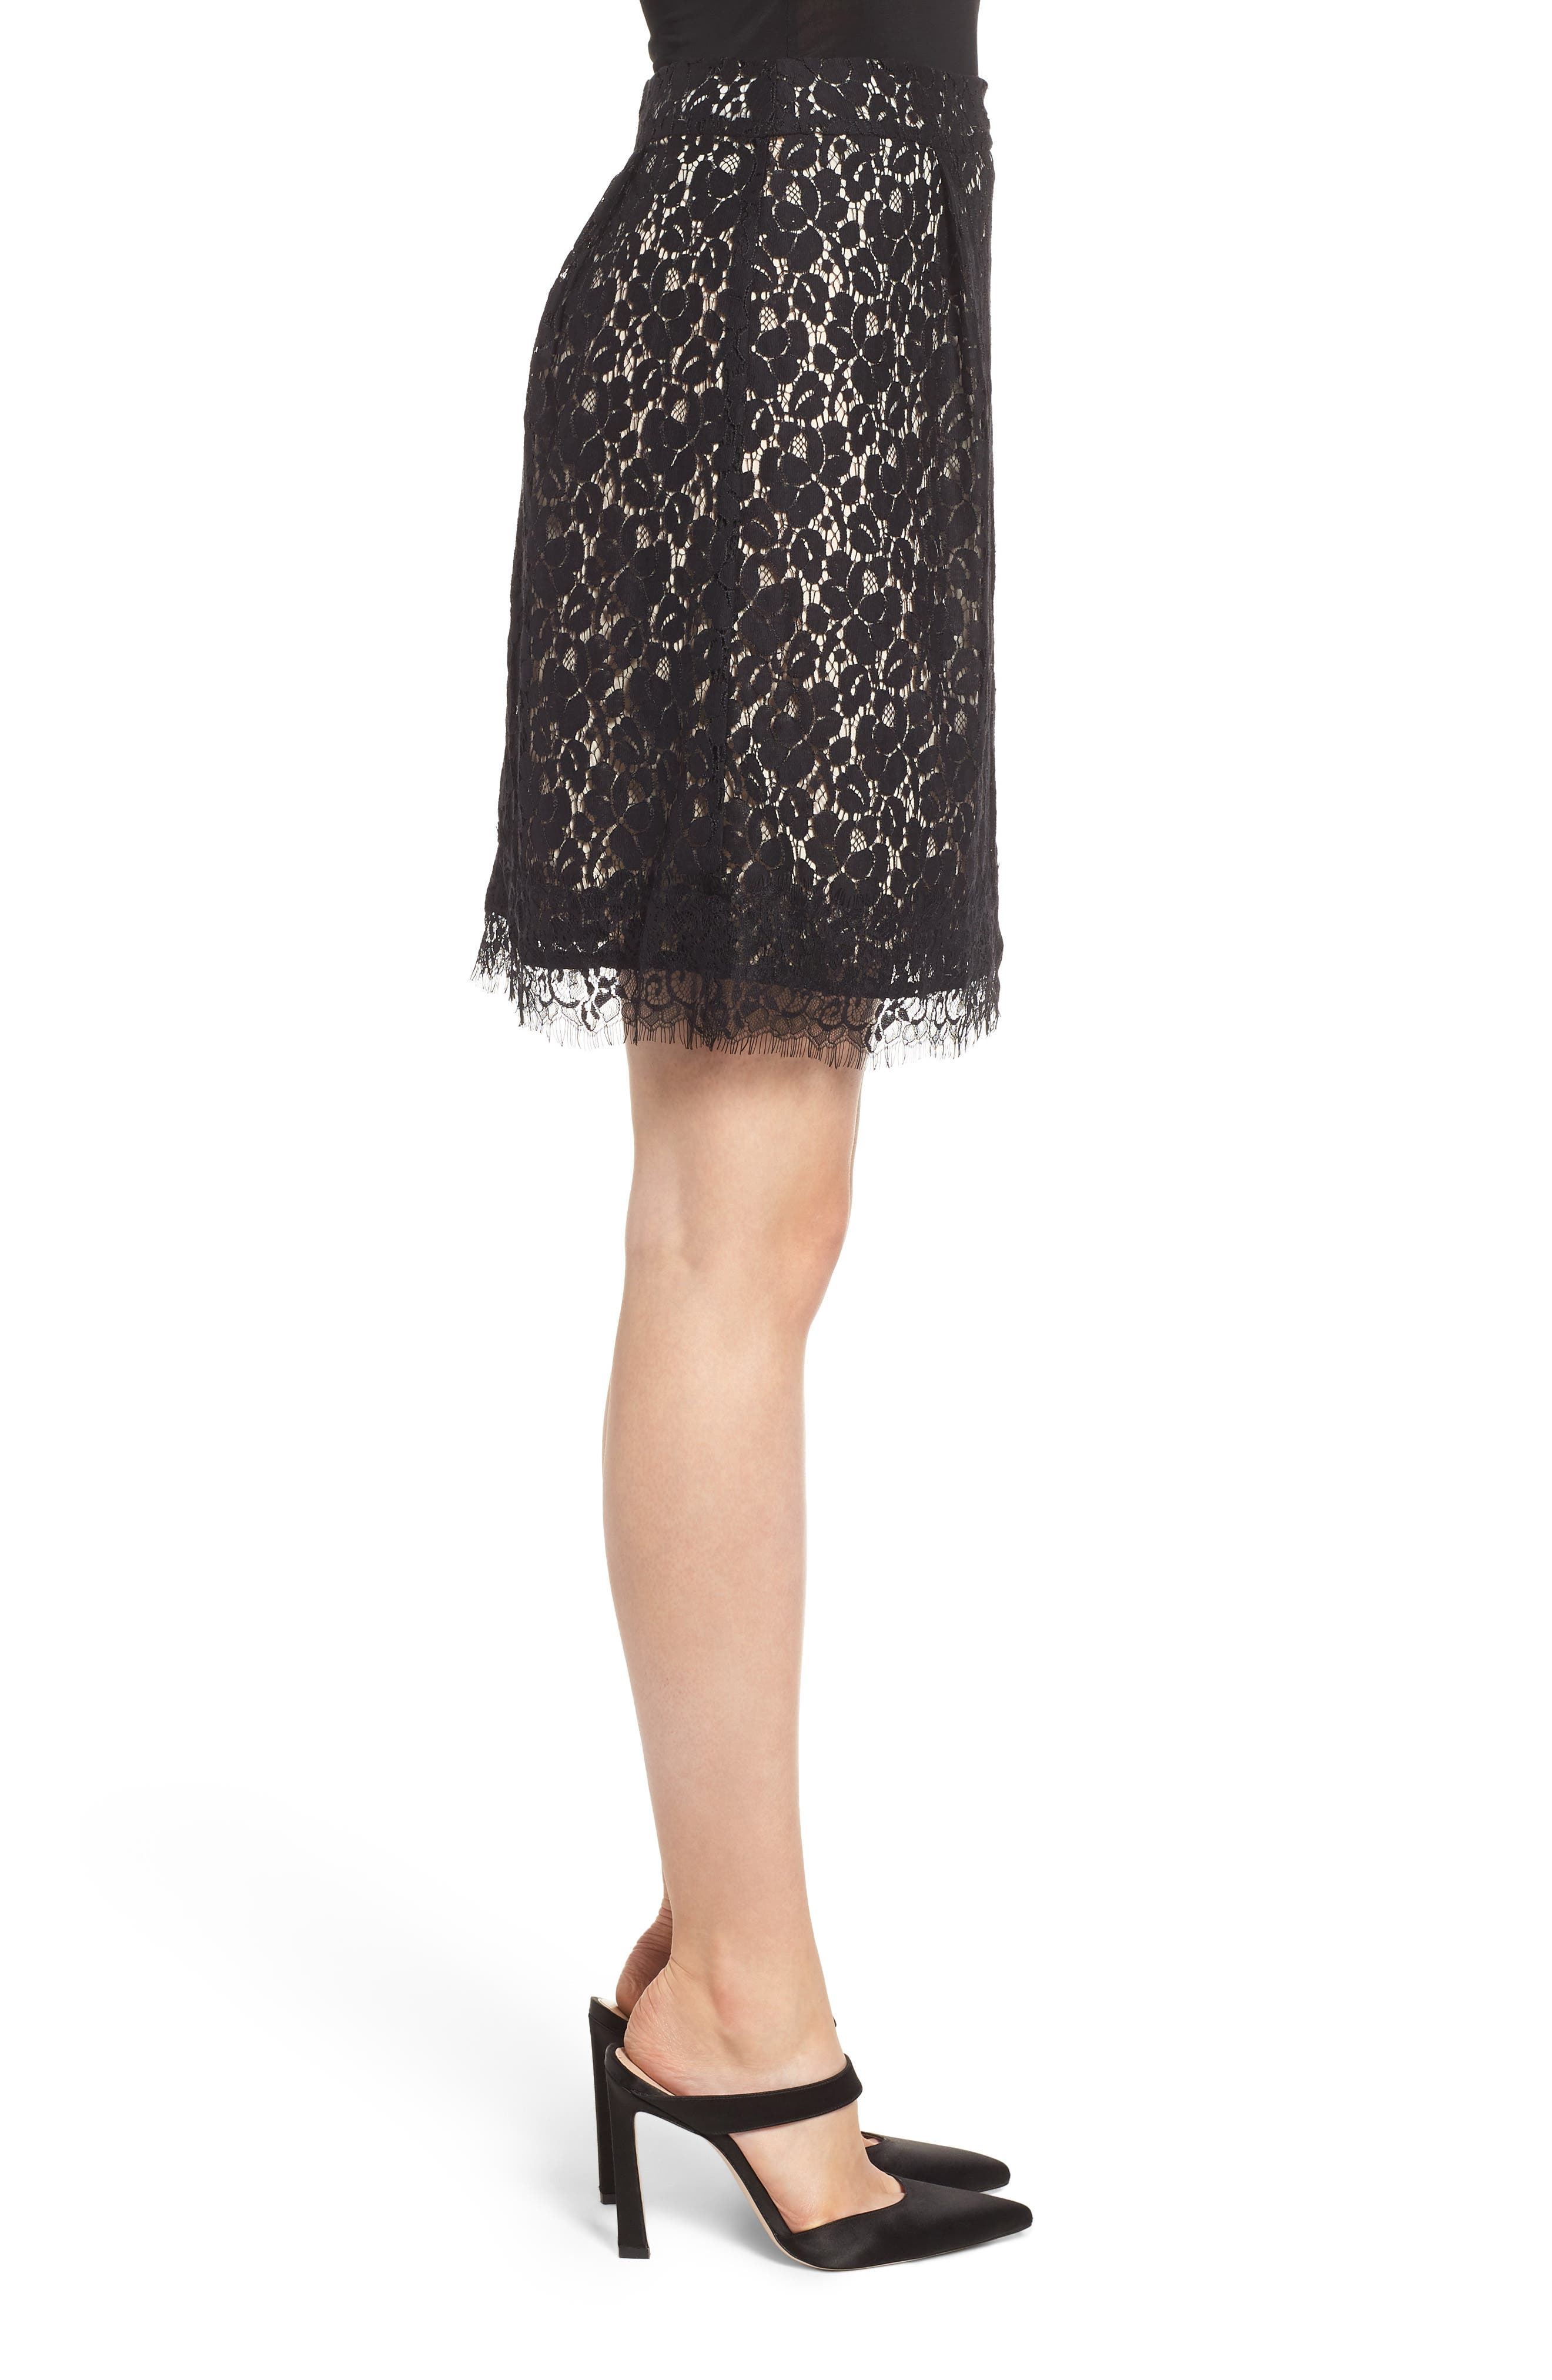 GIBSON,                             x Glam Squad Lace Skirt,                             Alternate thumbnail 4, color,                             017